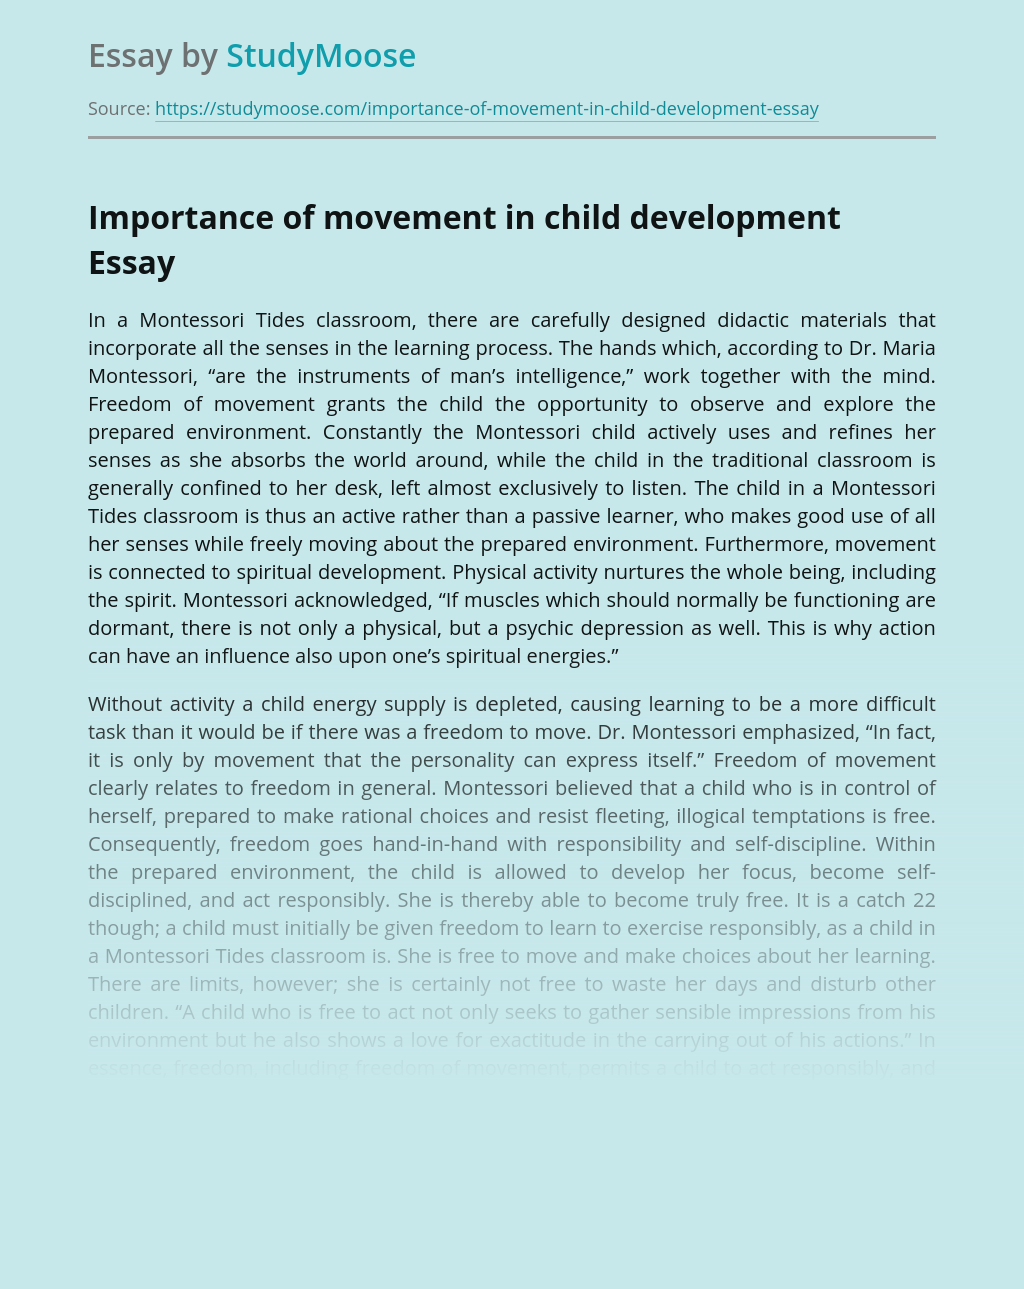 Importance of movement in child development